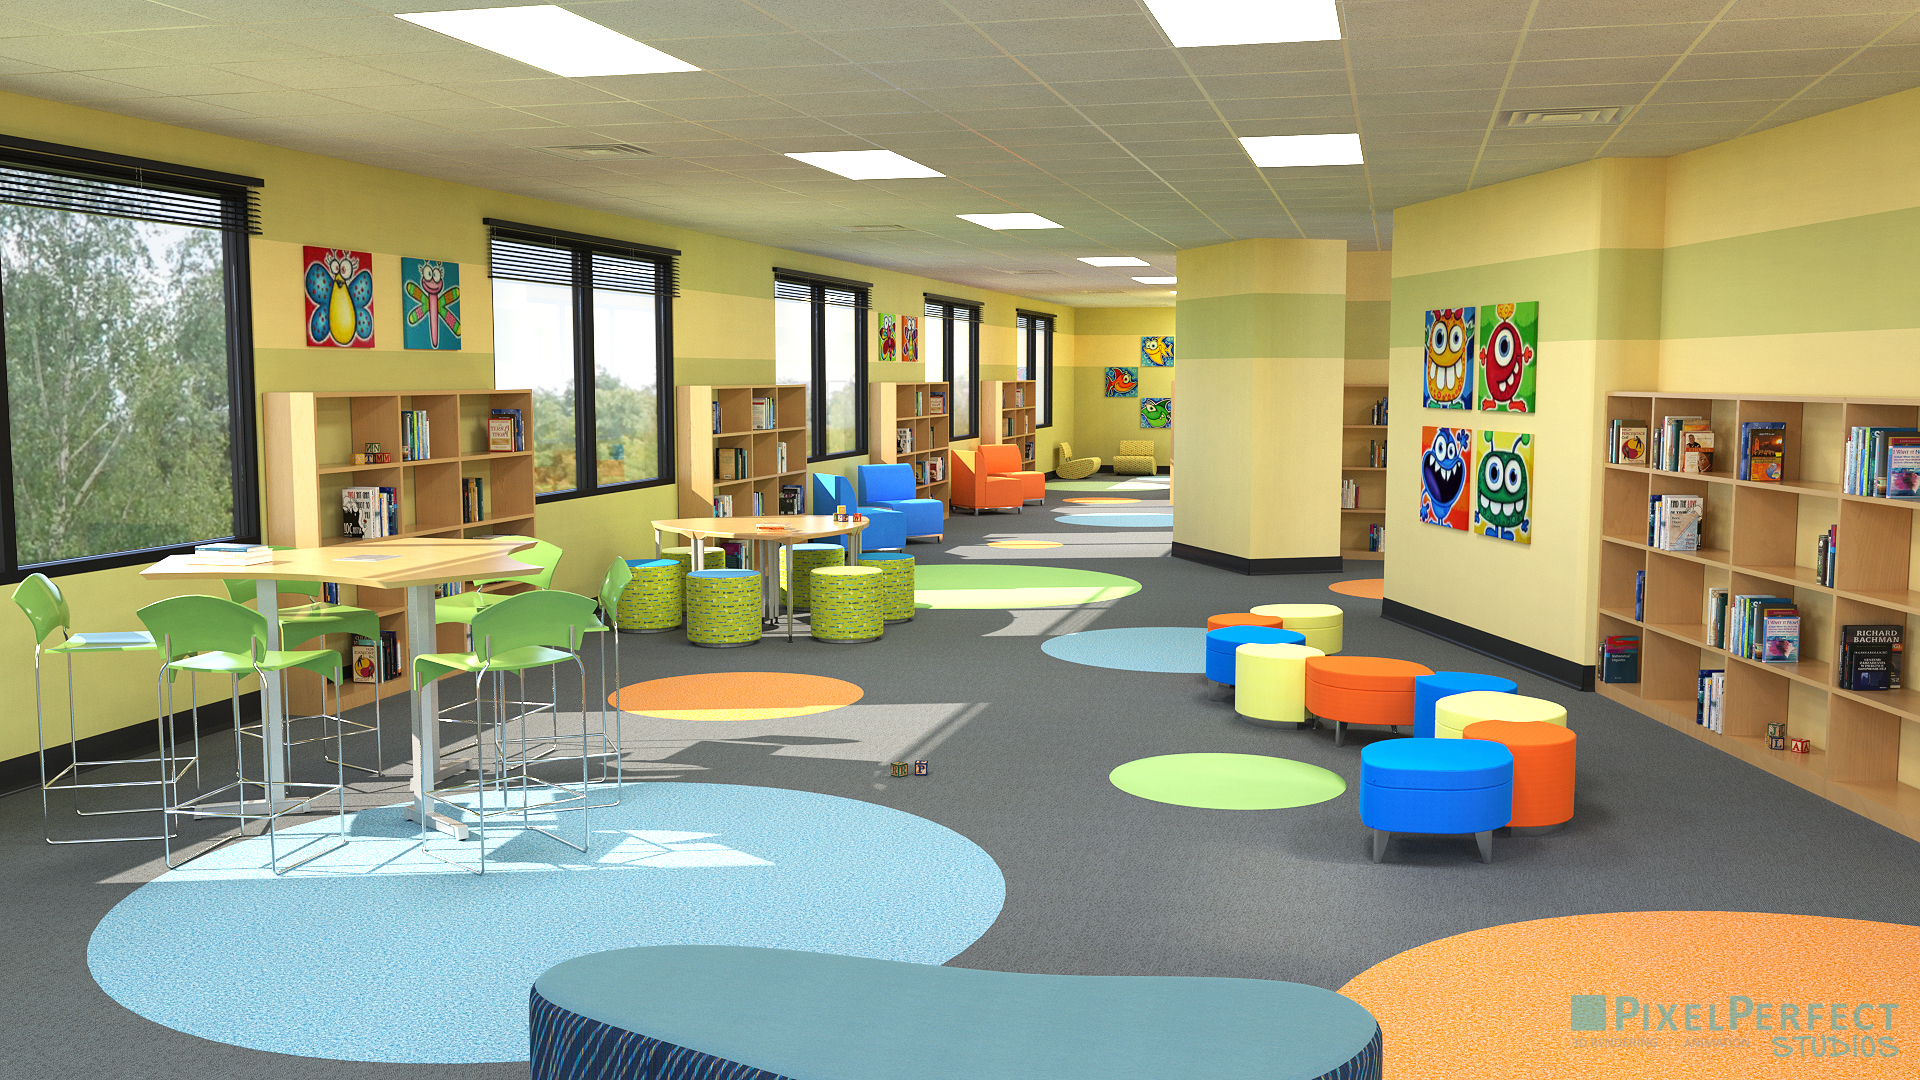 Pixel Perfect 3d Rendering Kids Daycare Playroom